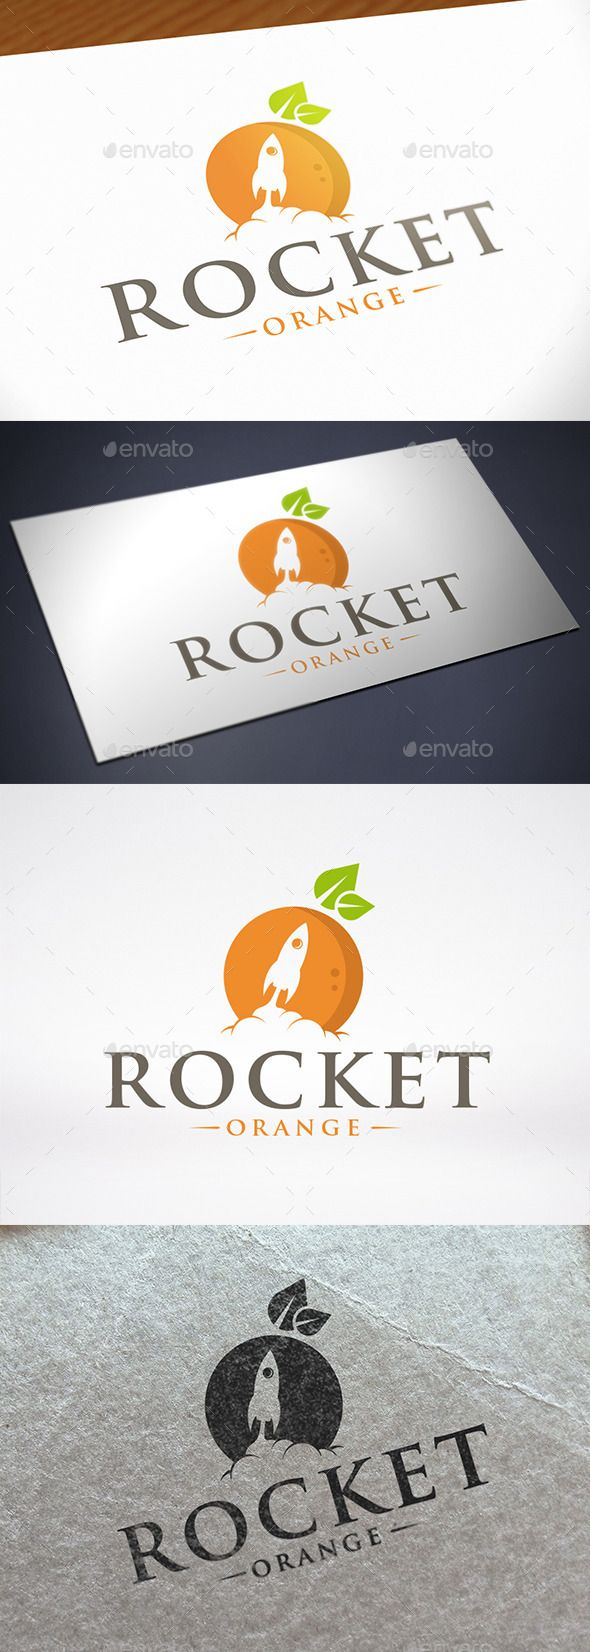 Orange Rocket Logo Template — Vector EPS #eco food #broadcasting corporation • Available here → https://graphicriver.net/item/orange-rocket-logo-template/12243712?ref=pxcr